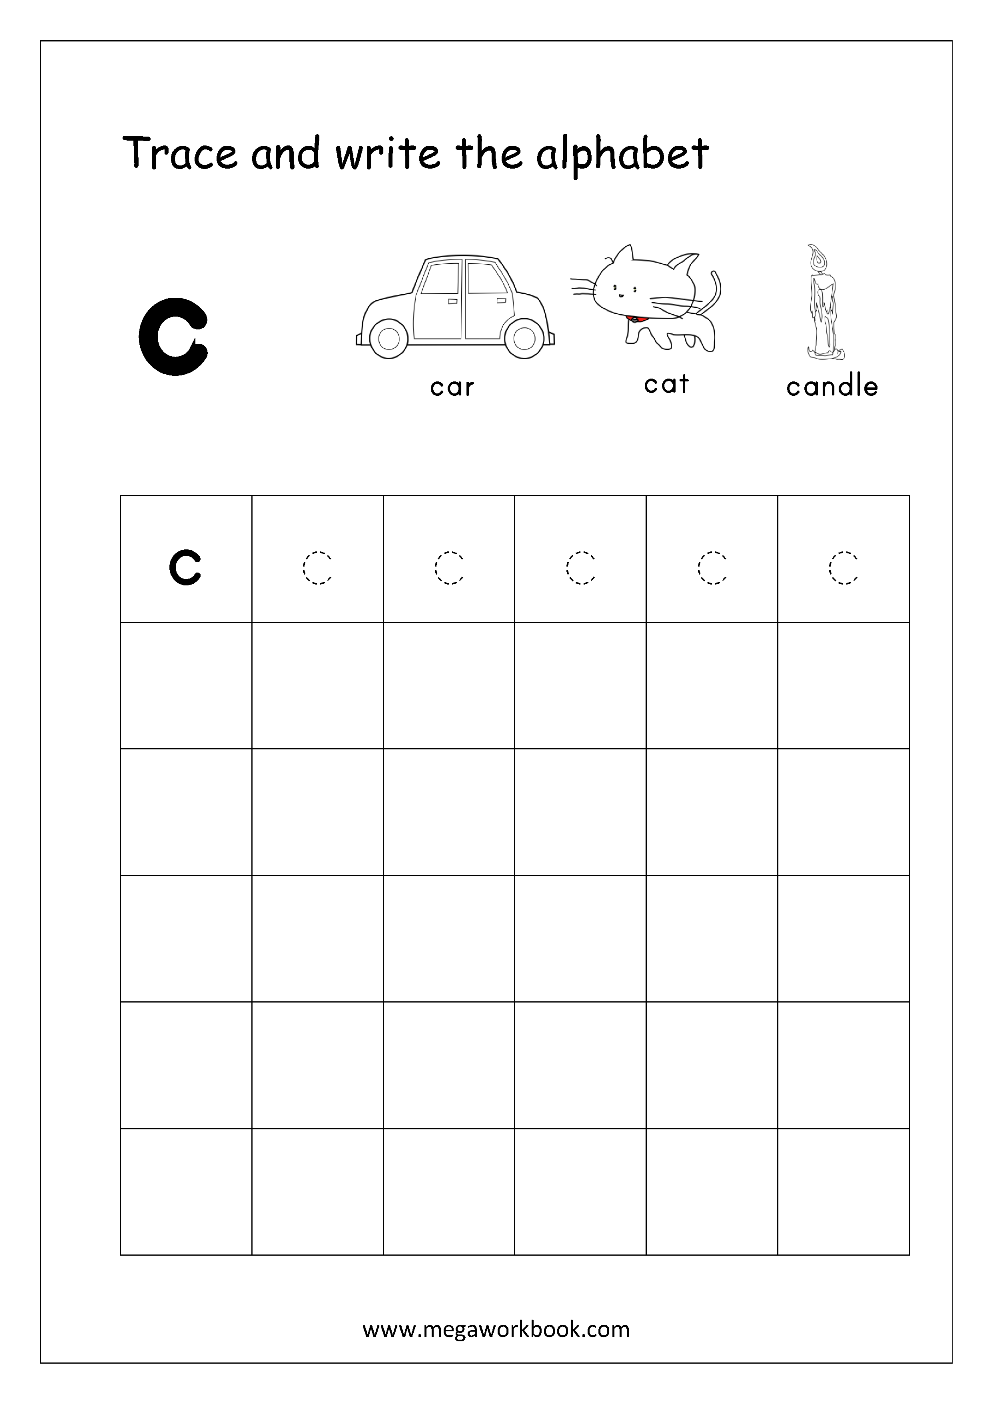 alphabet writing worksheets These no prep printable alphabet worksheets are amongst our newest alphabet activities for kidsthe printable alphabet letter worksheets are the perfect way to work on recognizing and forming uppercase and lowercase letters and their soundsadd these to our printable alphabet letter crafts preschoolers will work on letter recognition through the traceable letters and coloring.